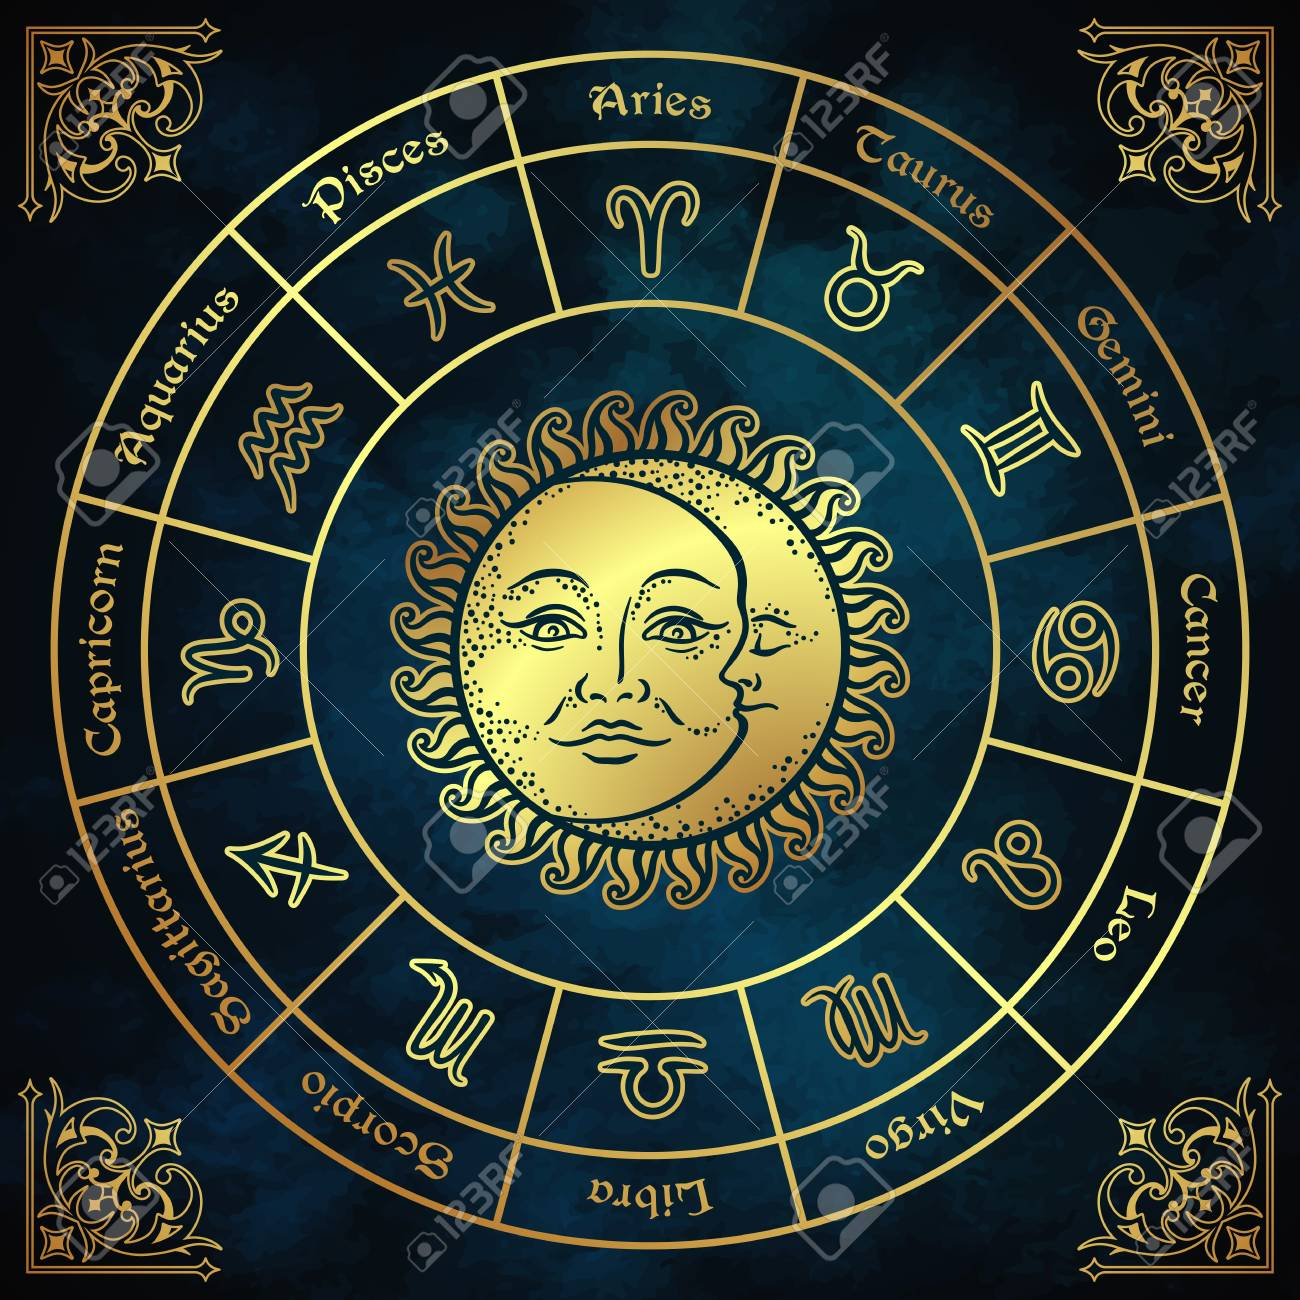 Zodiac circle with horoscope signs, sun and moon hand drawn vintage style vector illustration design. - 101197466